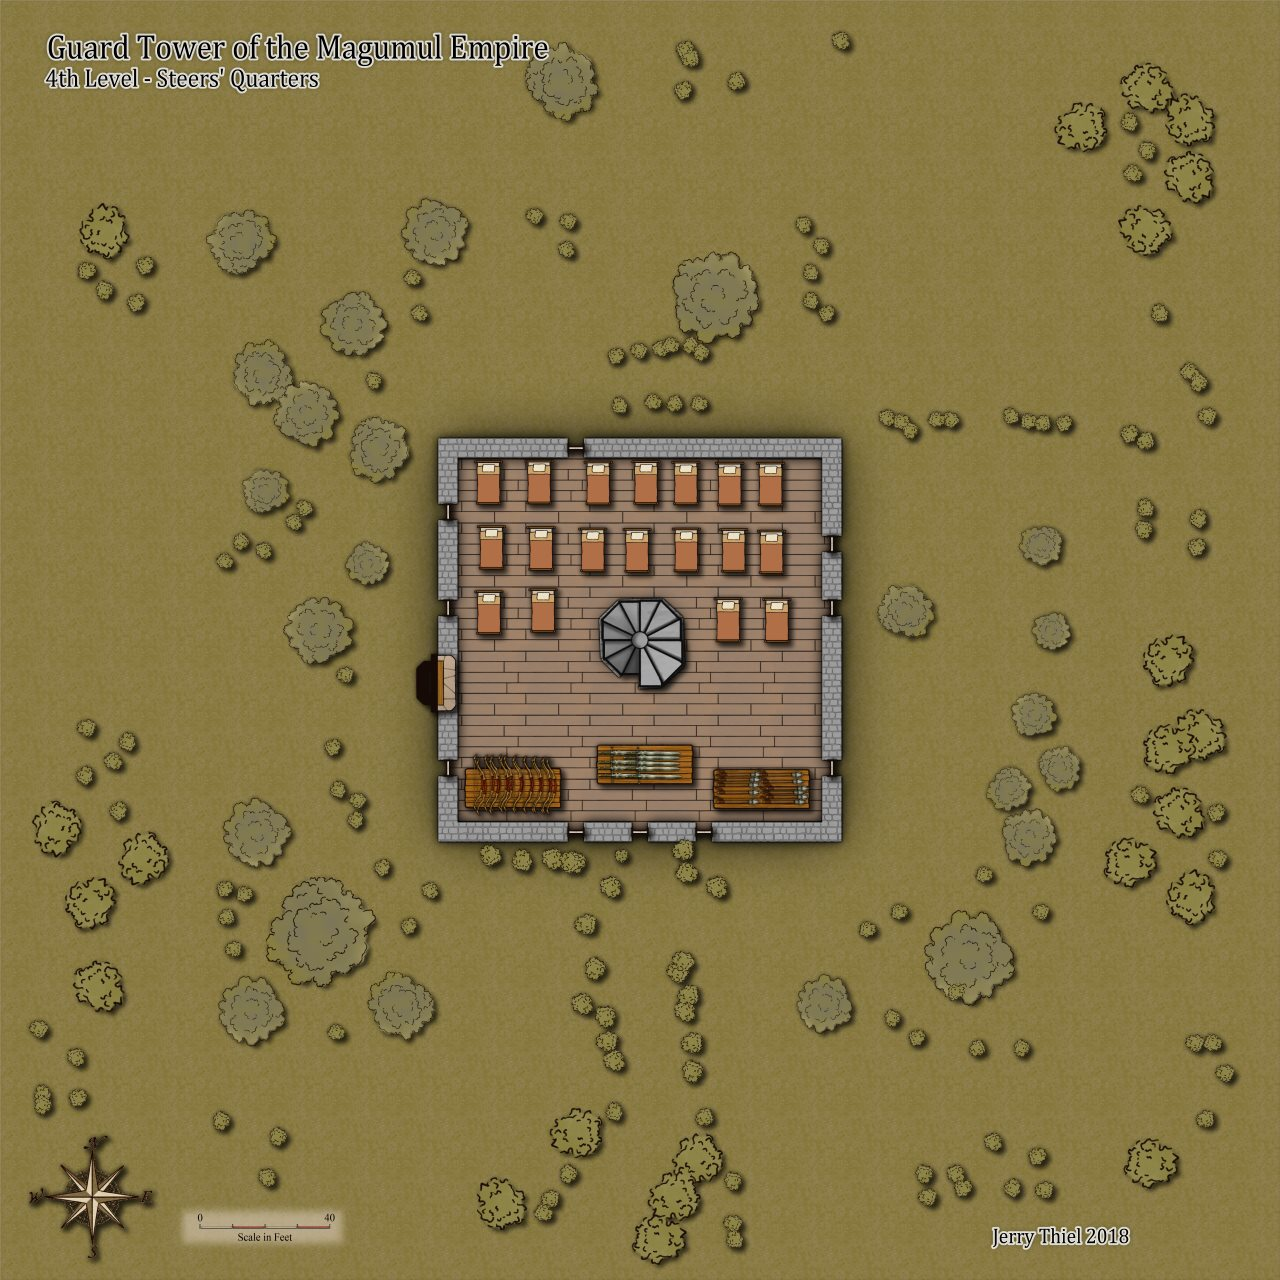 Nibirum Map: guard tower 4th floor by Jerry Thiel